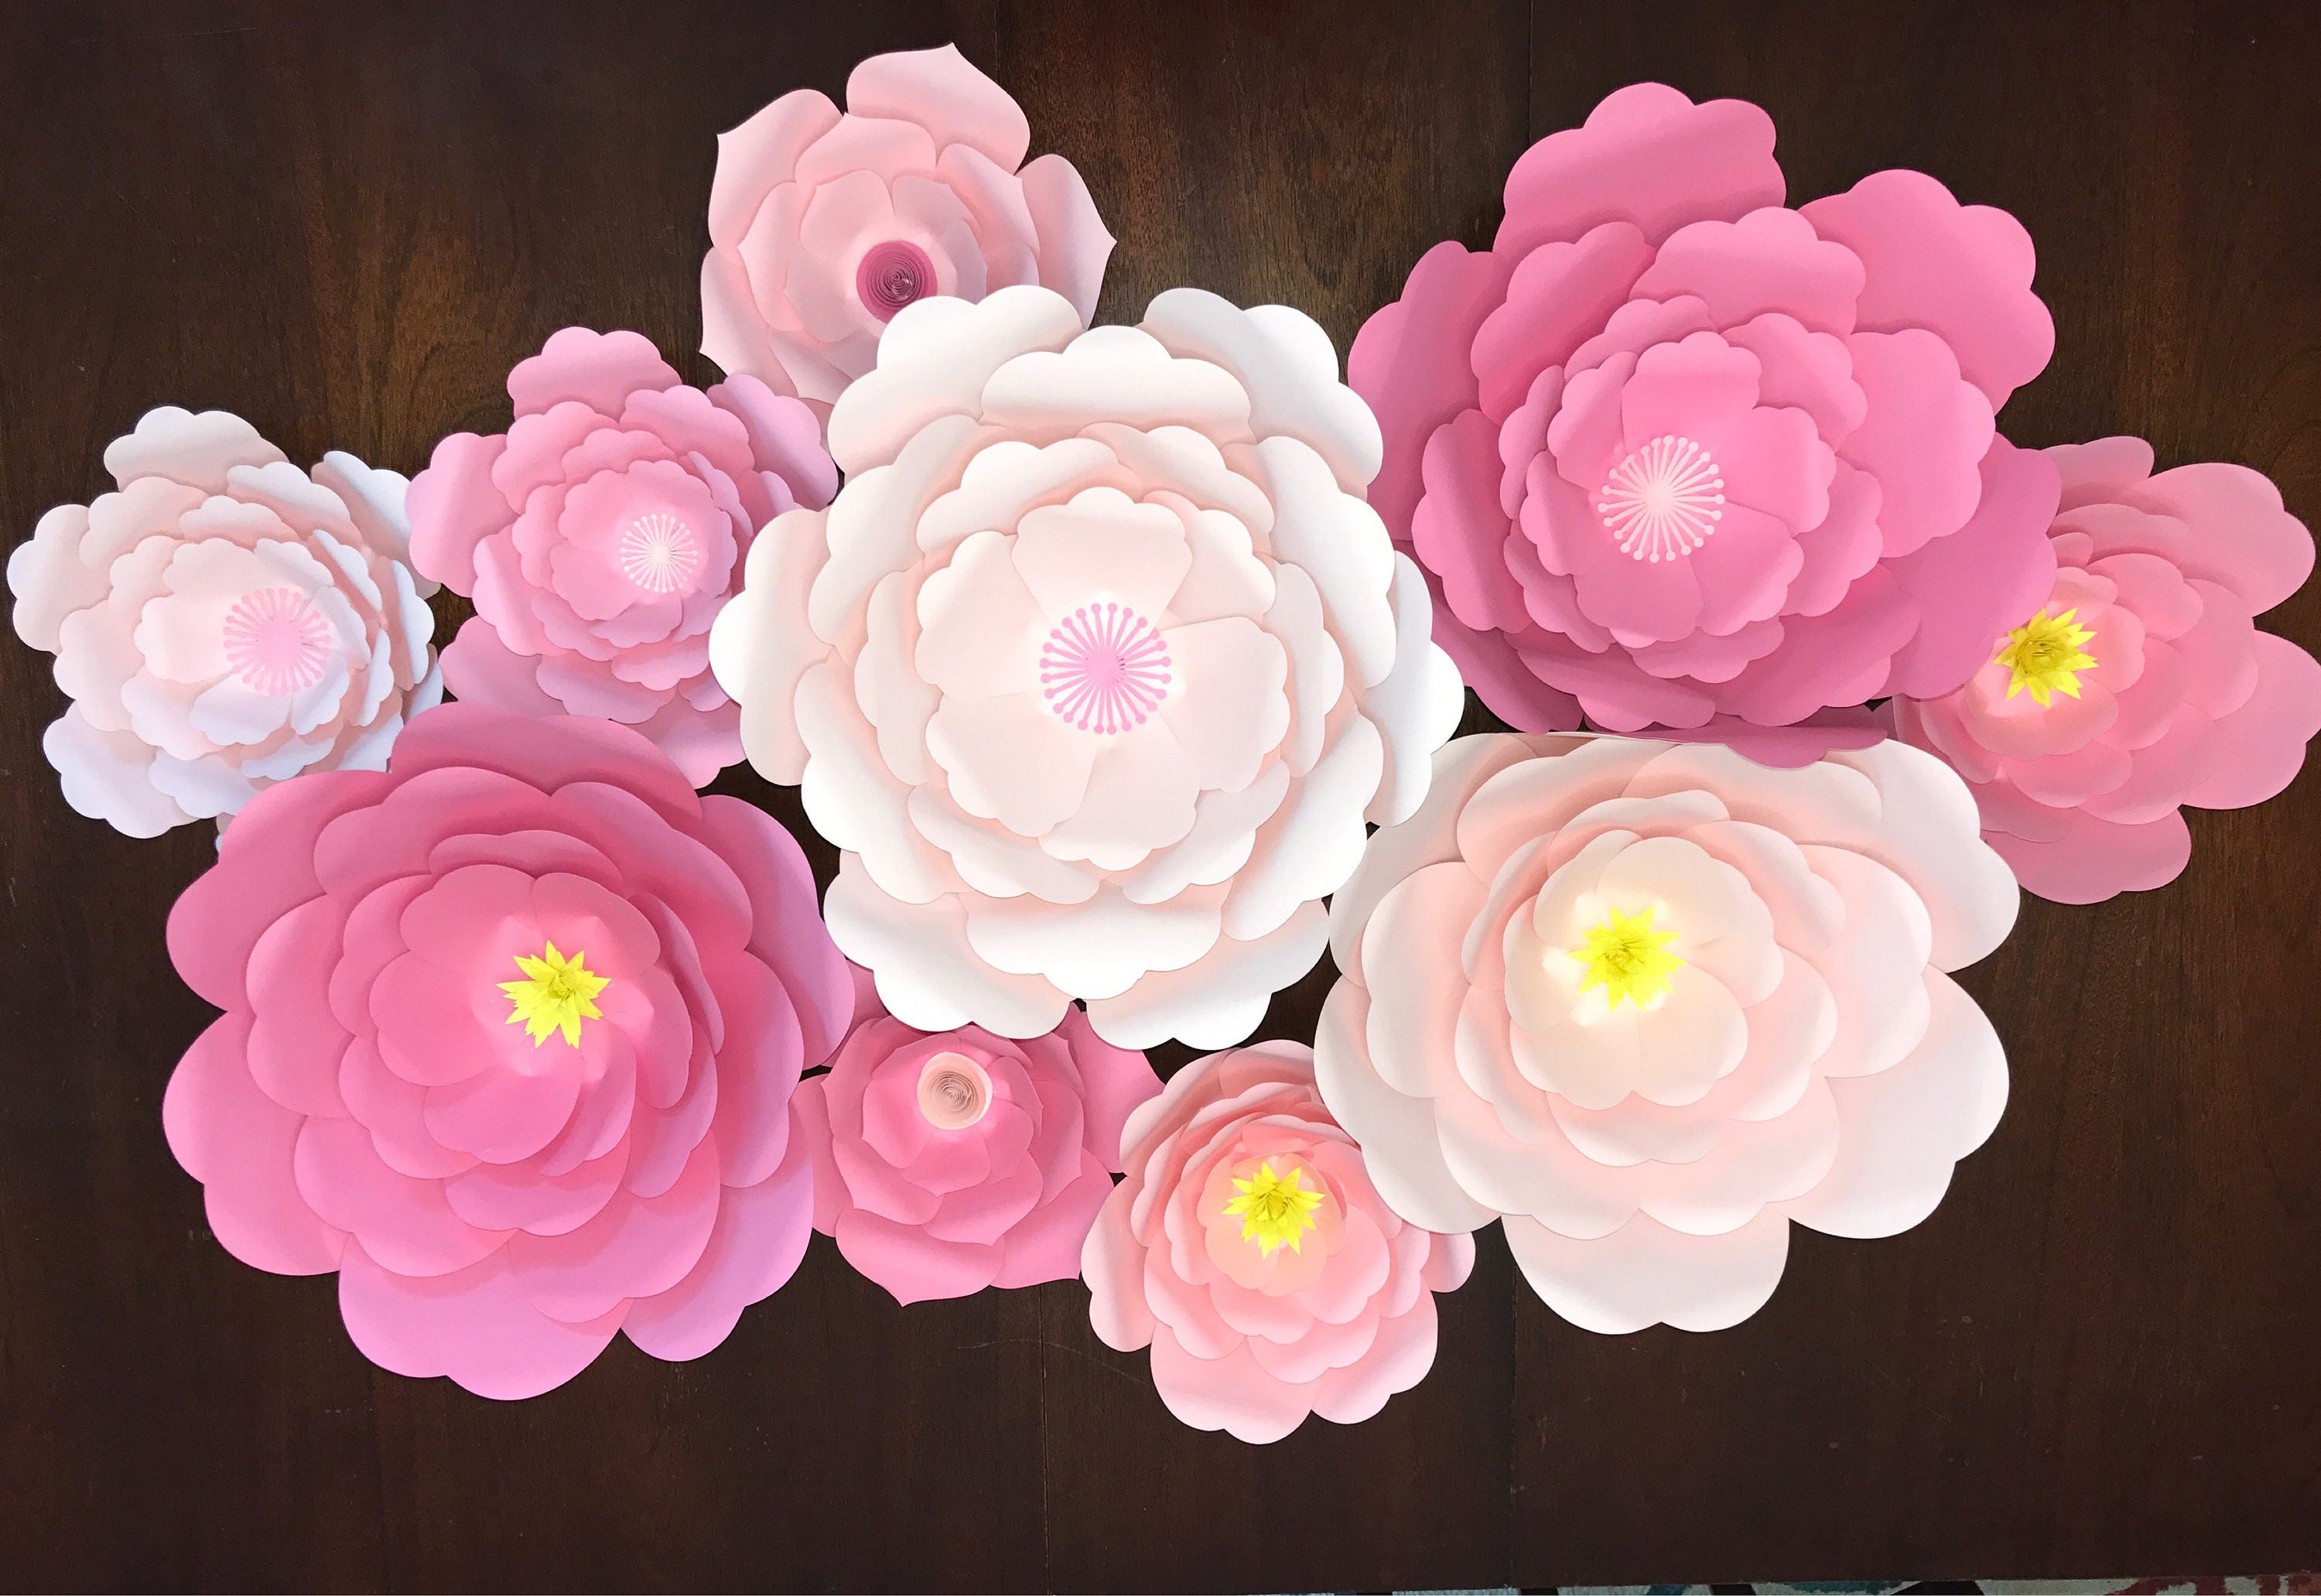 Giant Flowers Paper Flowers Flower Wall Art Paper Flower Backdrop